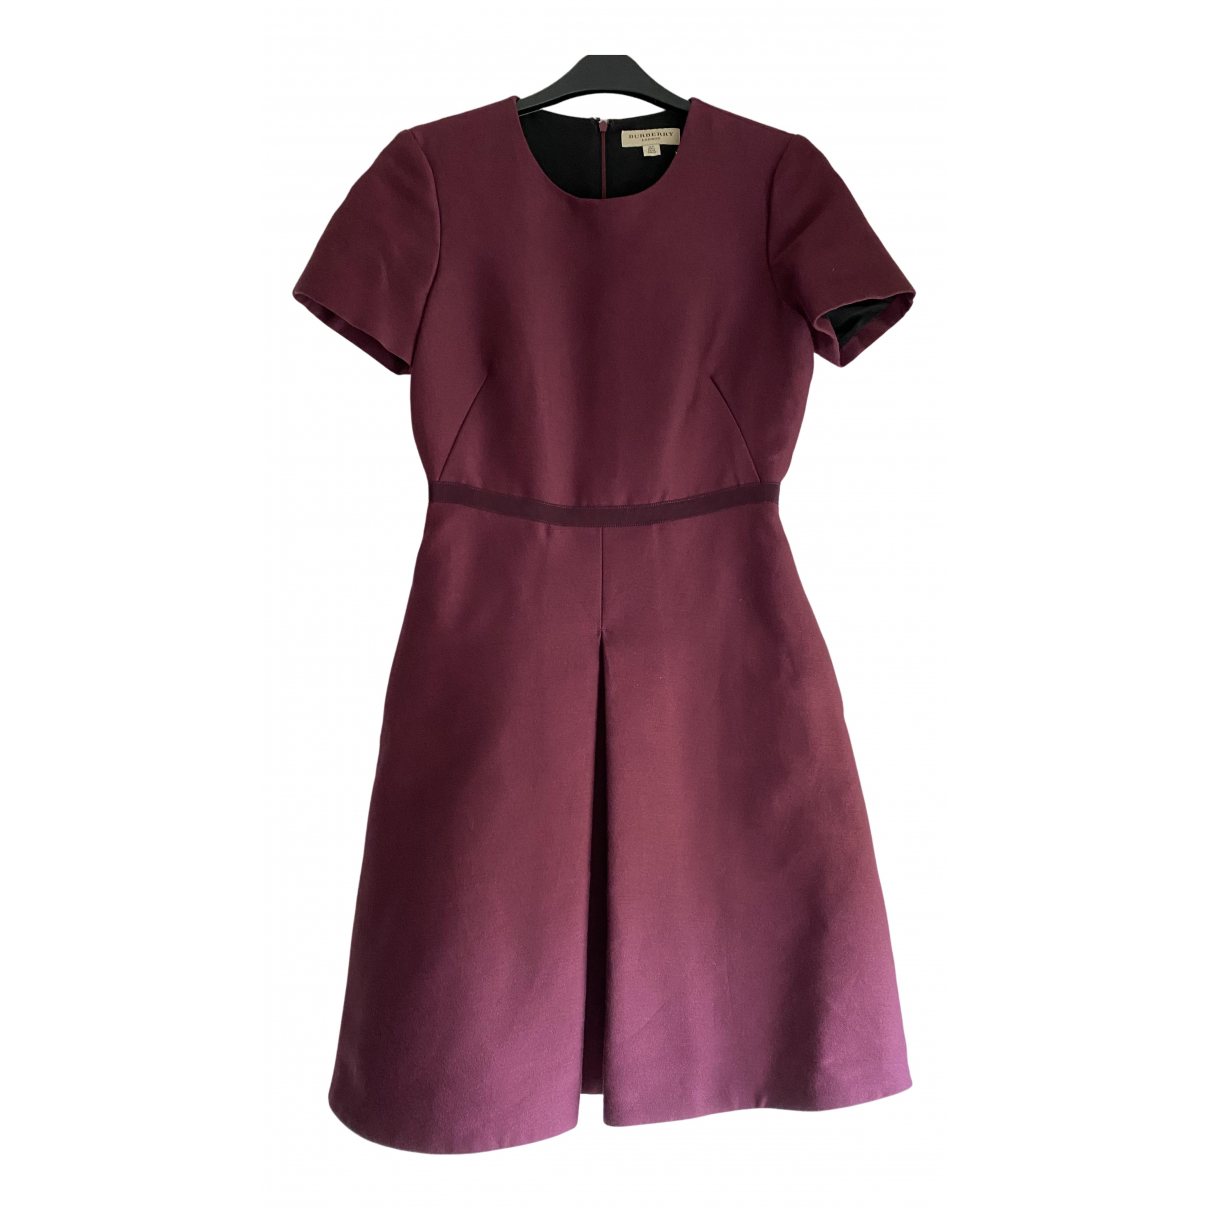 Burberry N Pink Wool dress for Women 6 UK